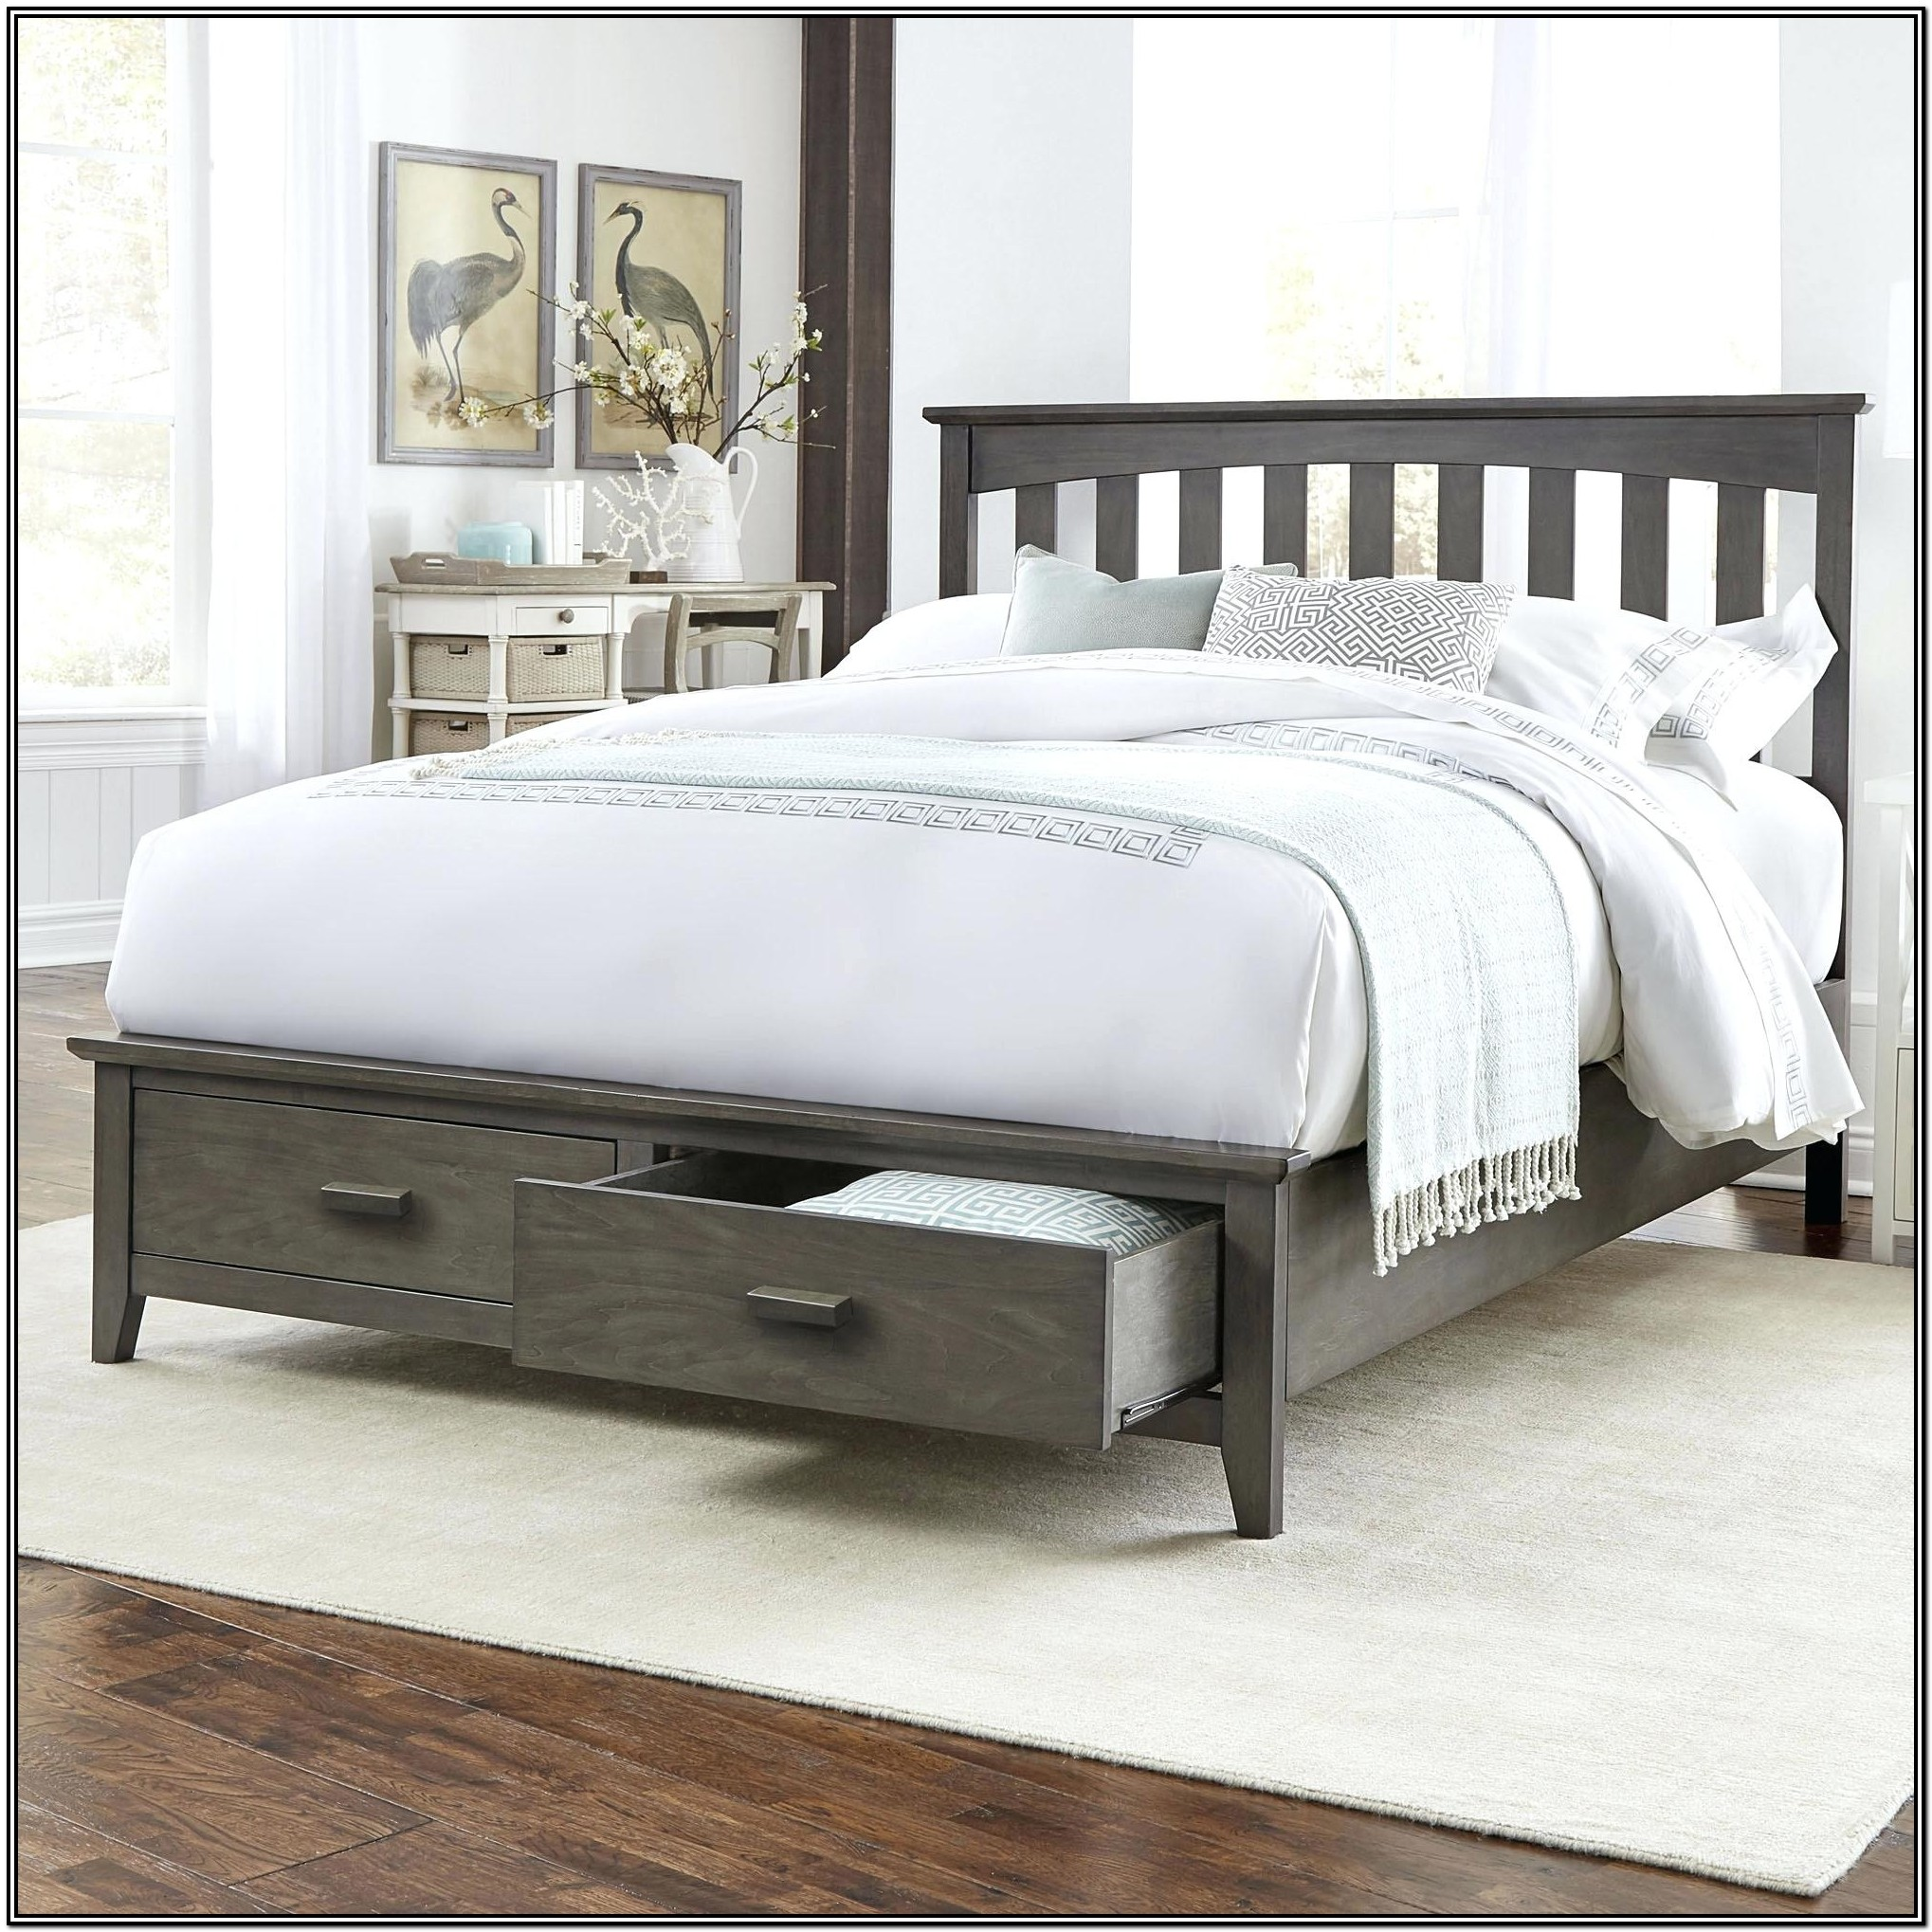 King Size Storage Bed Frame Plans